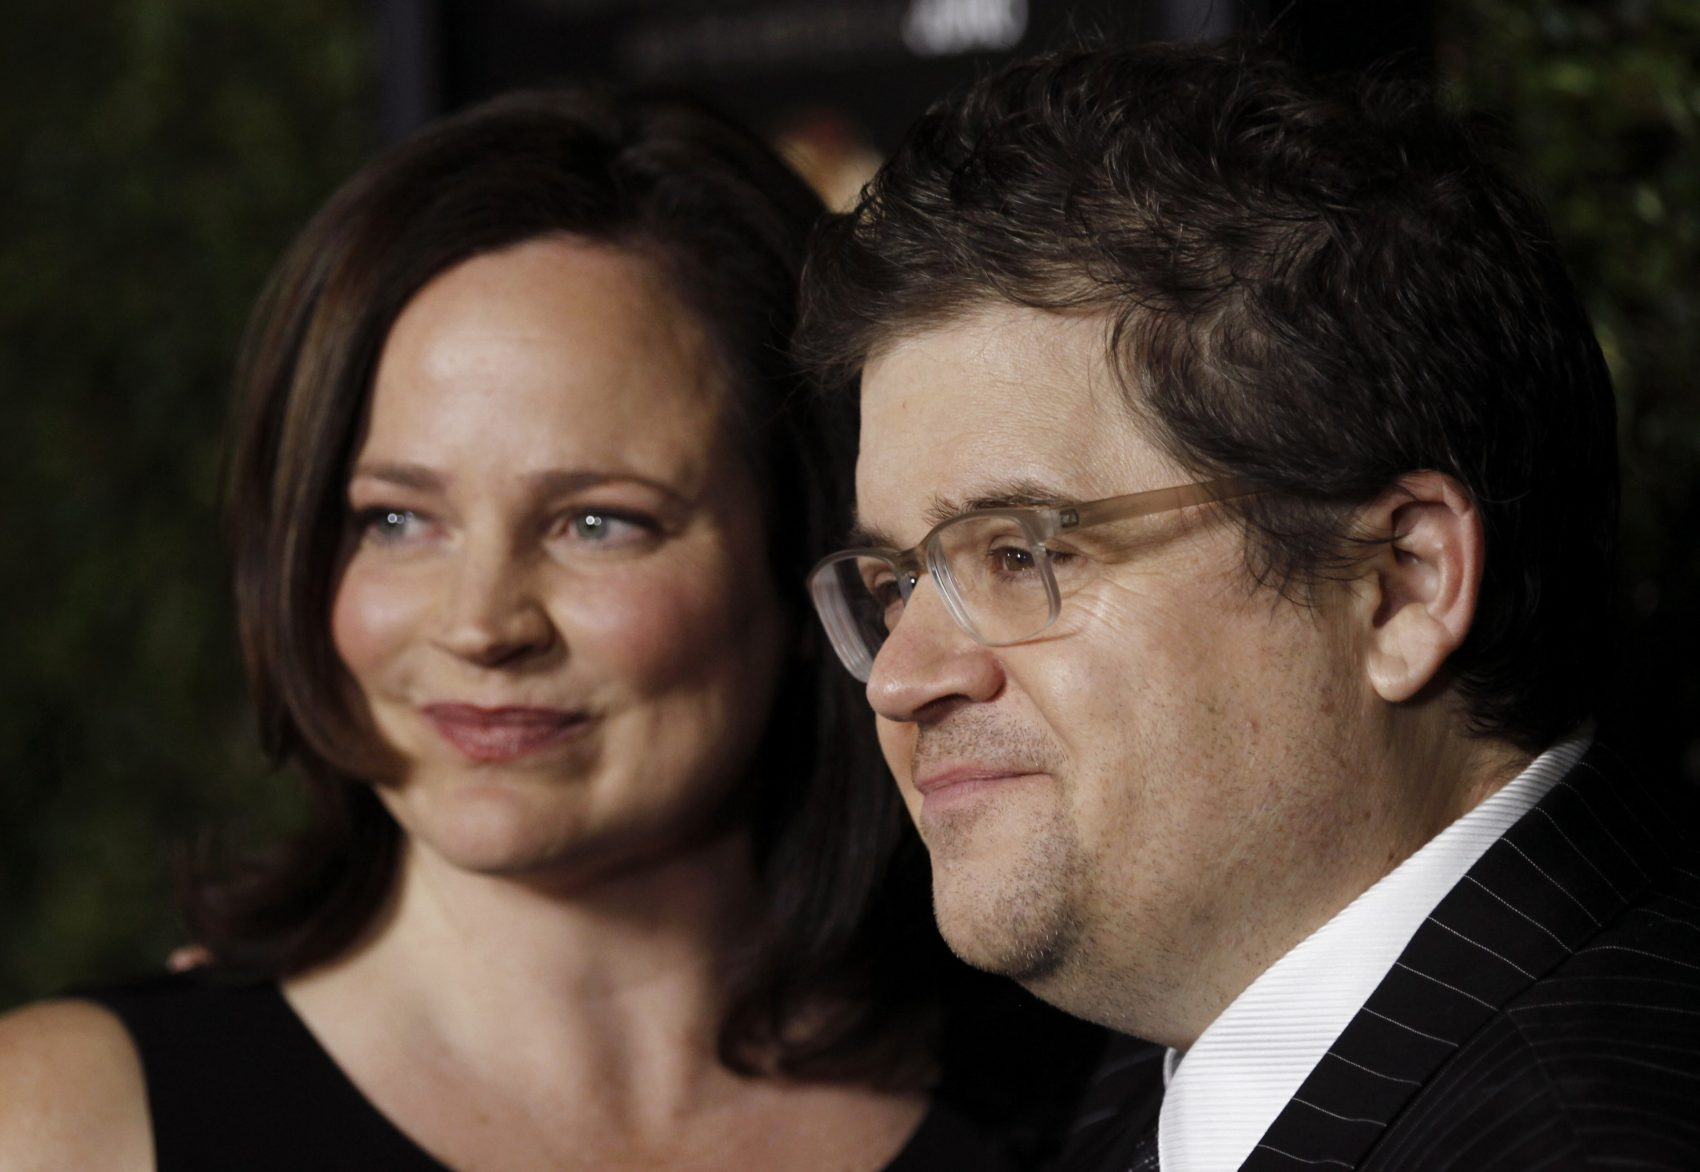 """Patton Oswalt, right, and Michelle Eileen McNamara arrive at the premiere of """"Young Adult"""" in Beverly Hills, Calif., Thursday, Dec. 15, 2011. (Matt Sayles/AP)"""